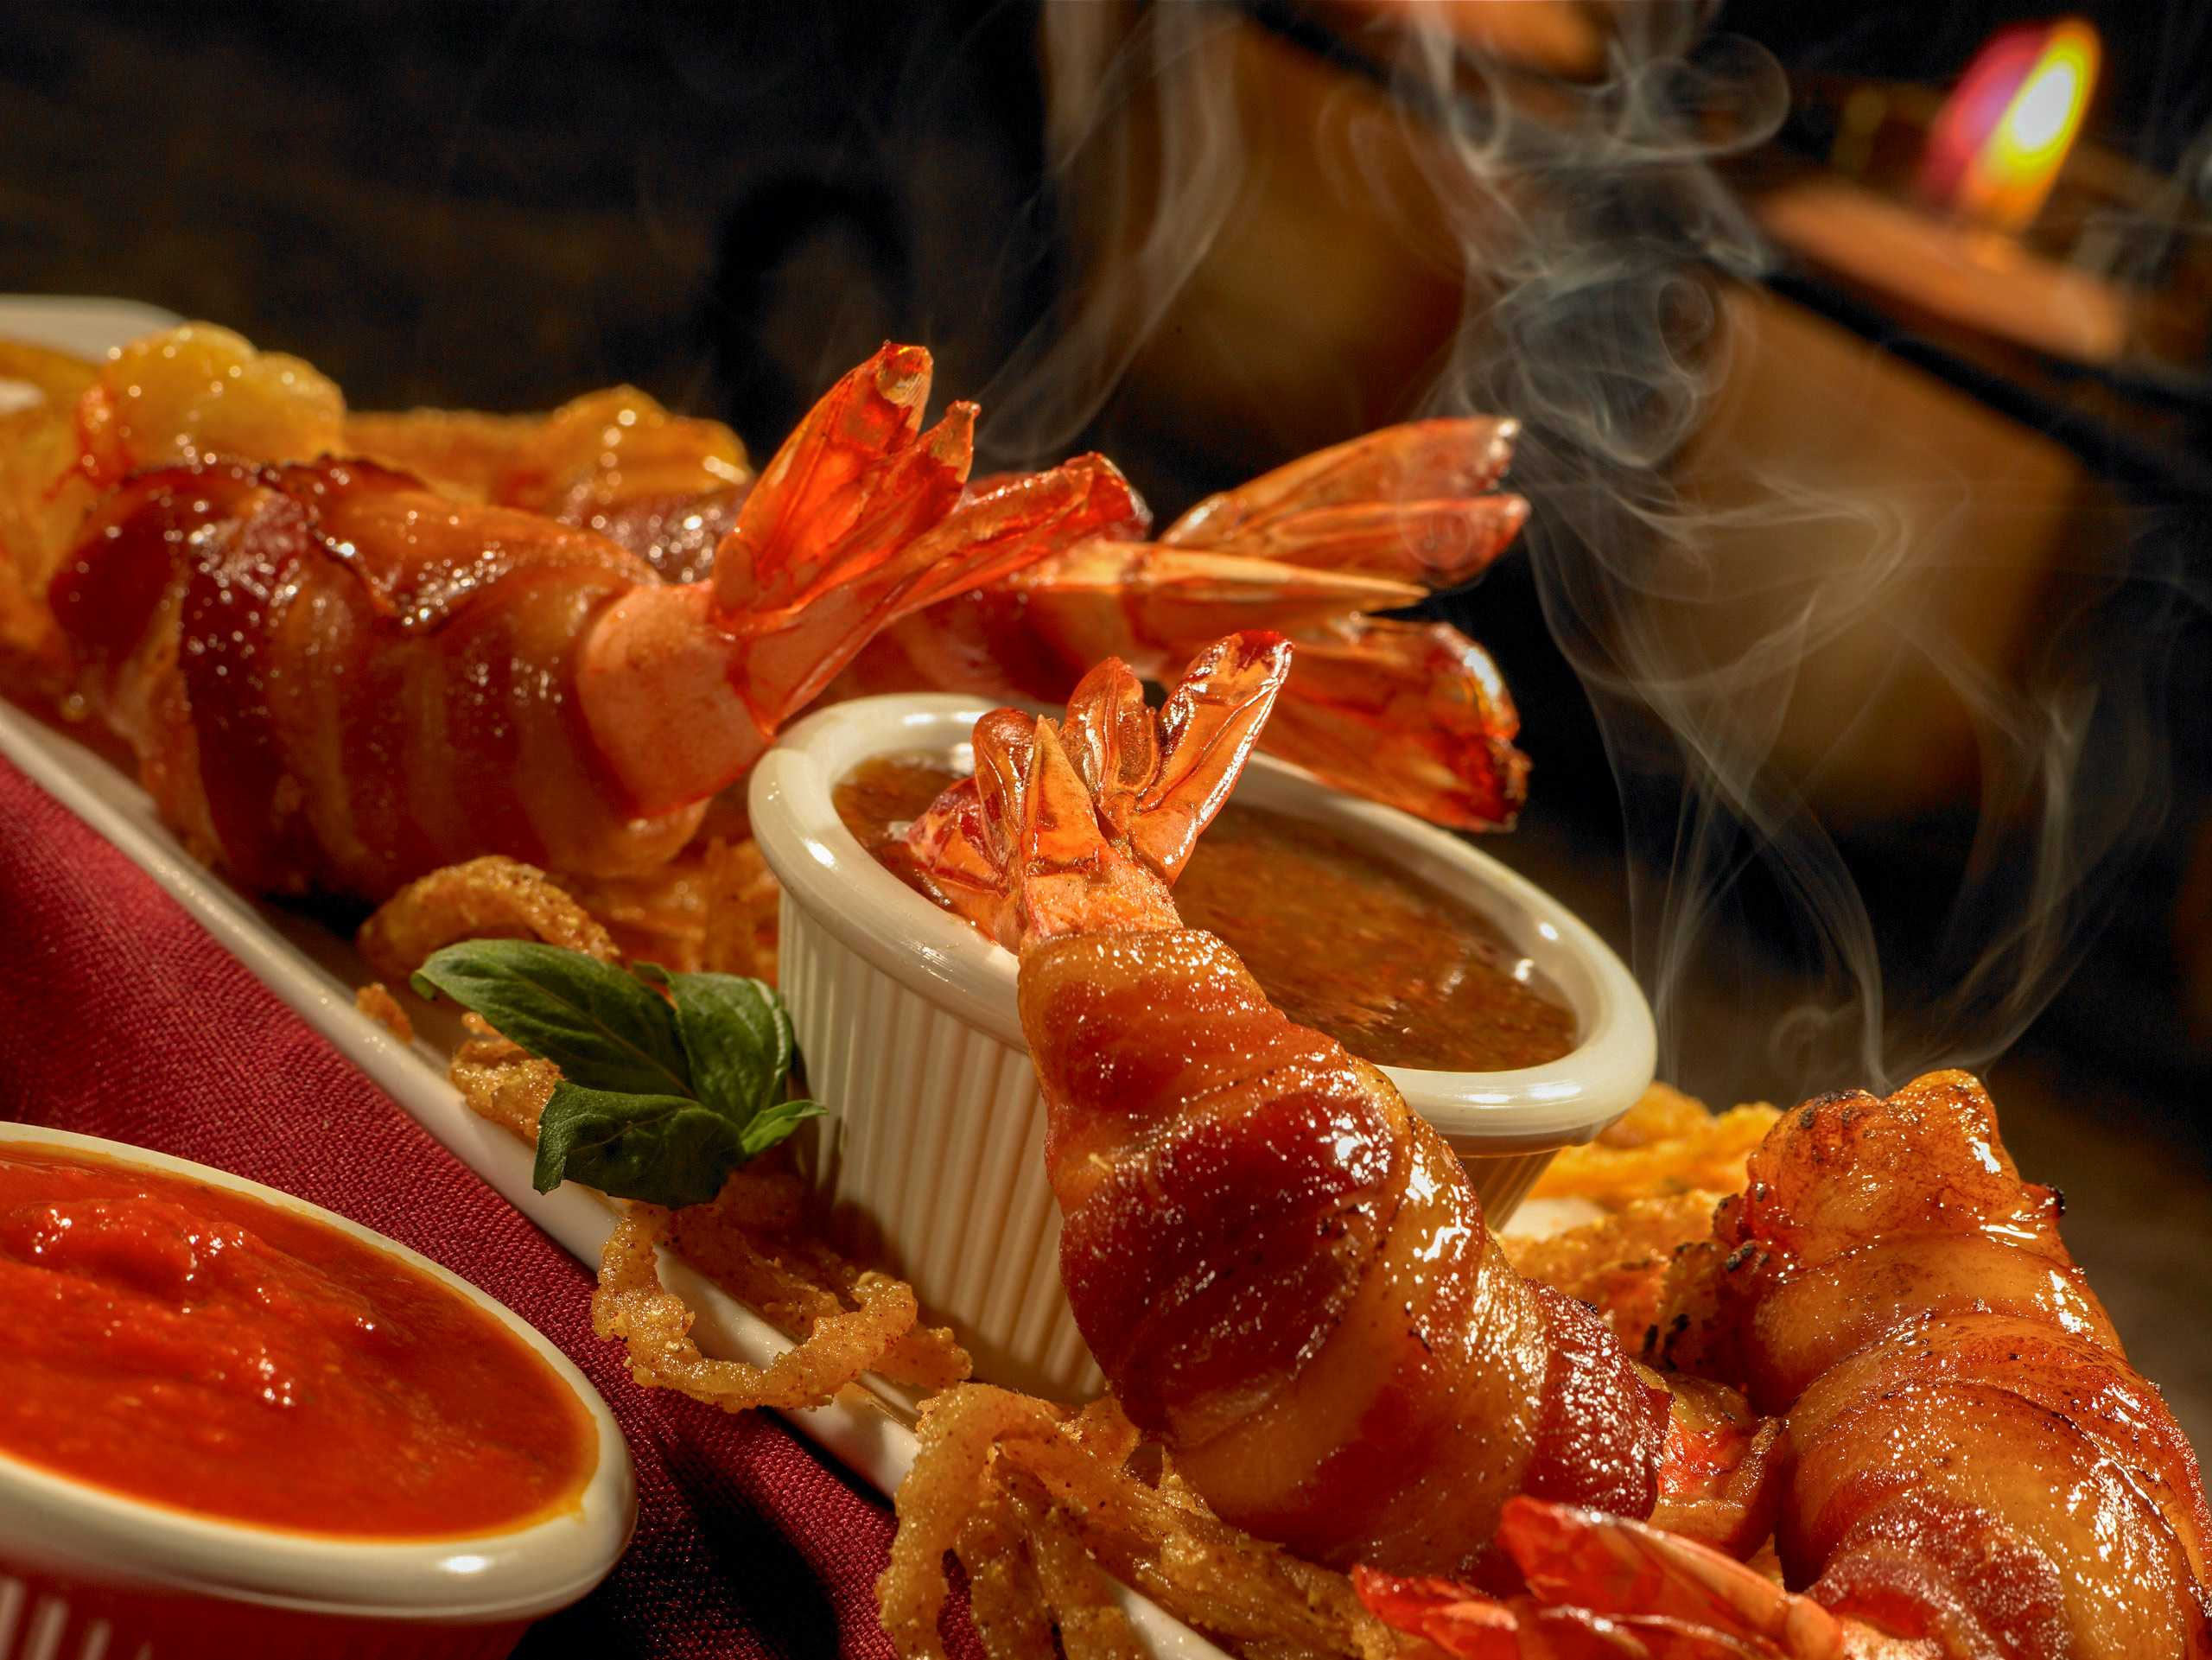 BaconWraped-shrimp_A-142for-web.jpg